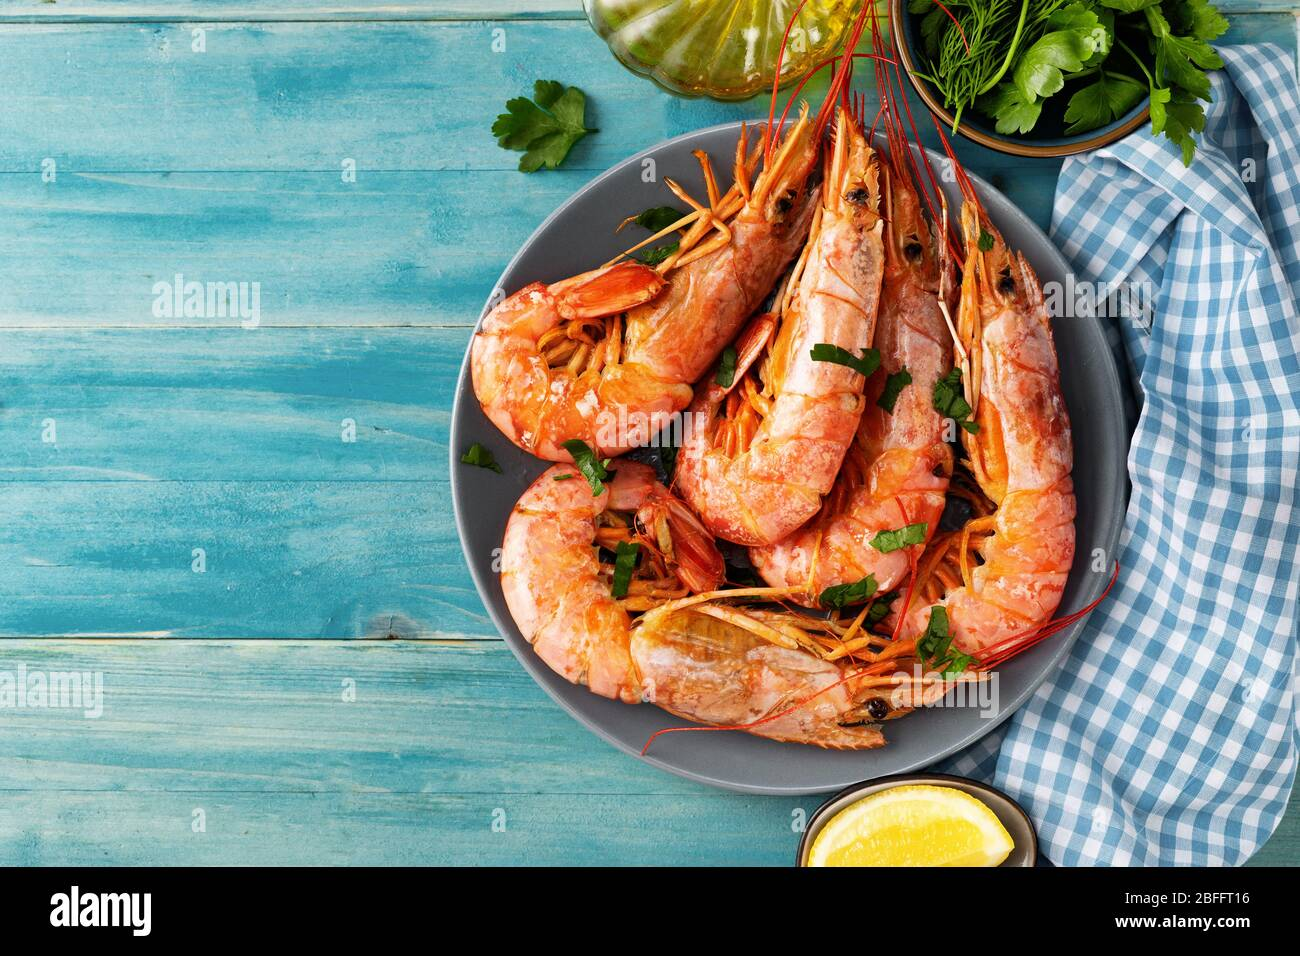 Top view of turquoise color dining table with cooked red prawns and ingredients Stock Photo